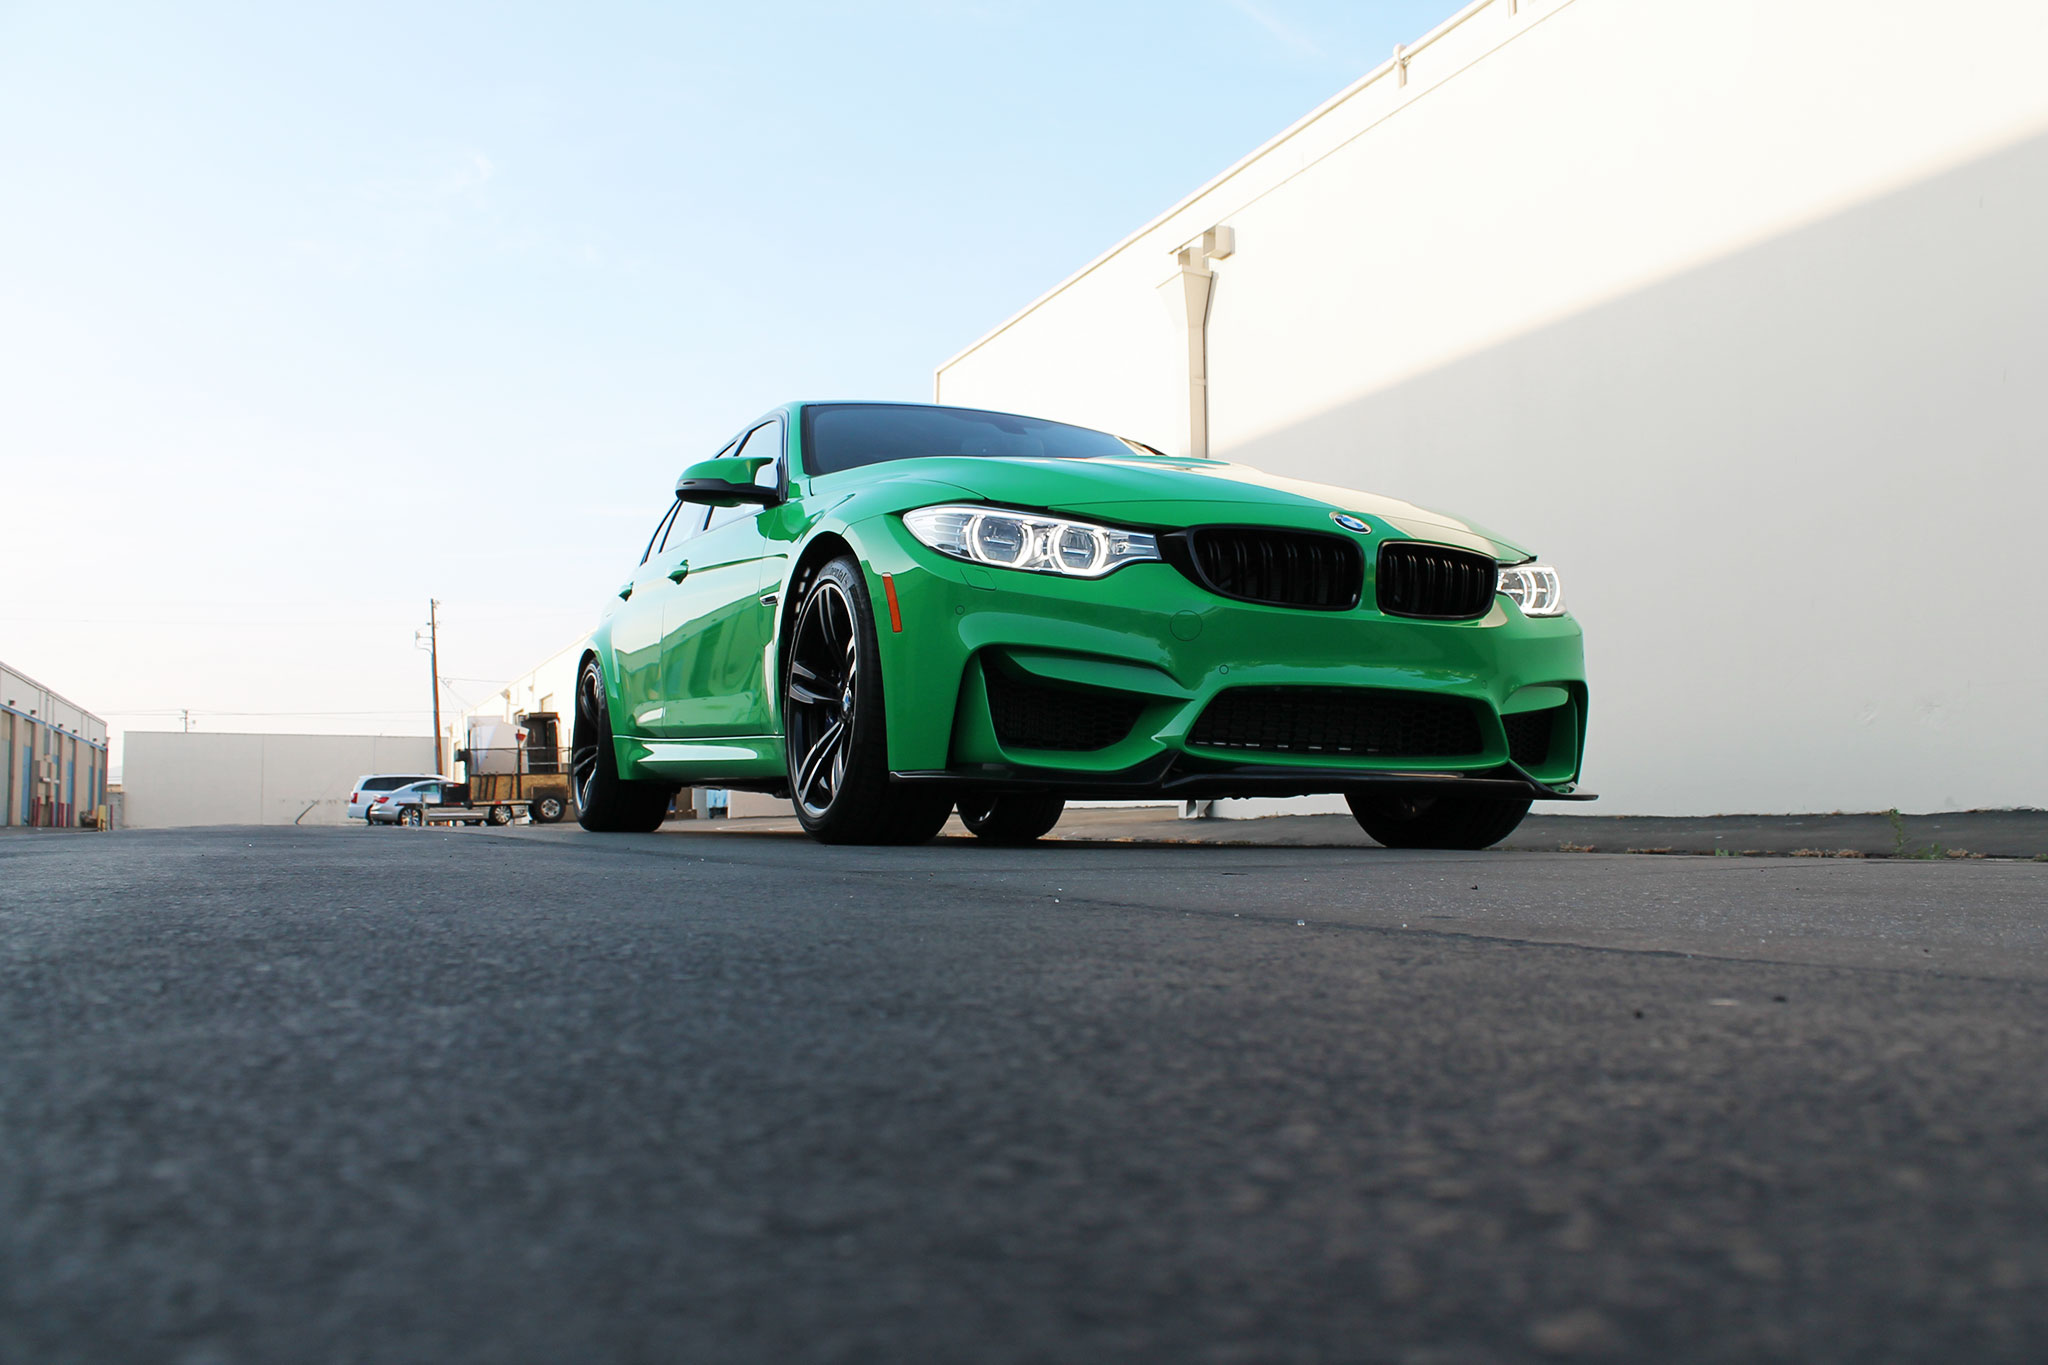 RW-Carbon-BMW-F80-M3-Signal-Green-Photoshoot-5